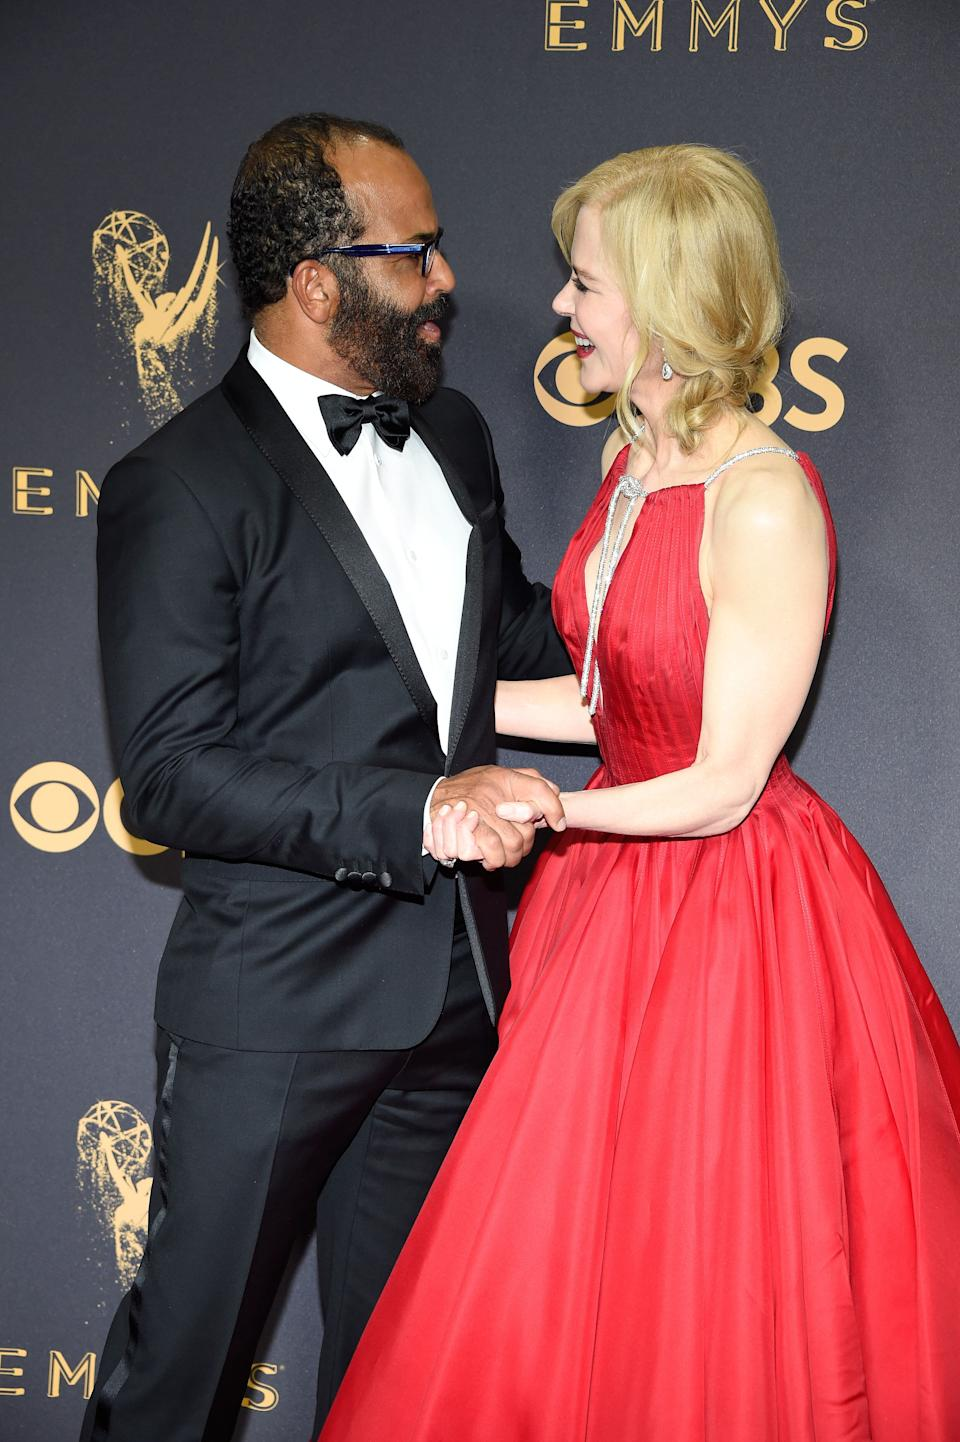 LOS ANGELES, CA - SEPTEMBER 17:  Actors Jeffrey Wright (L) and Nicole Kidman attend the 69th Annual Primetime Emmy Awards at Microsoft Theater on September 17, 2017 in Los Angeles, California.  (Photo by Kevin Mazur/WireImage)